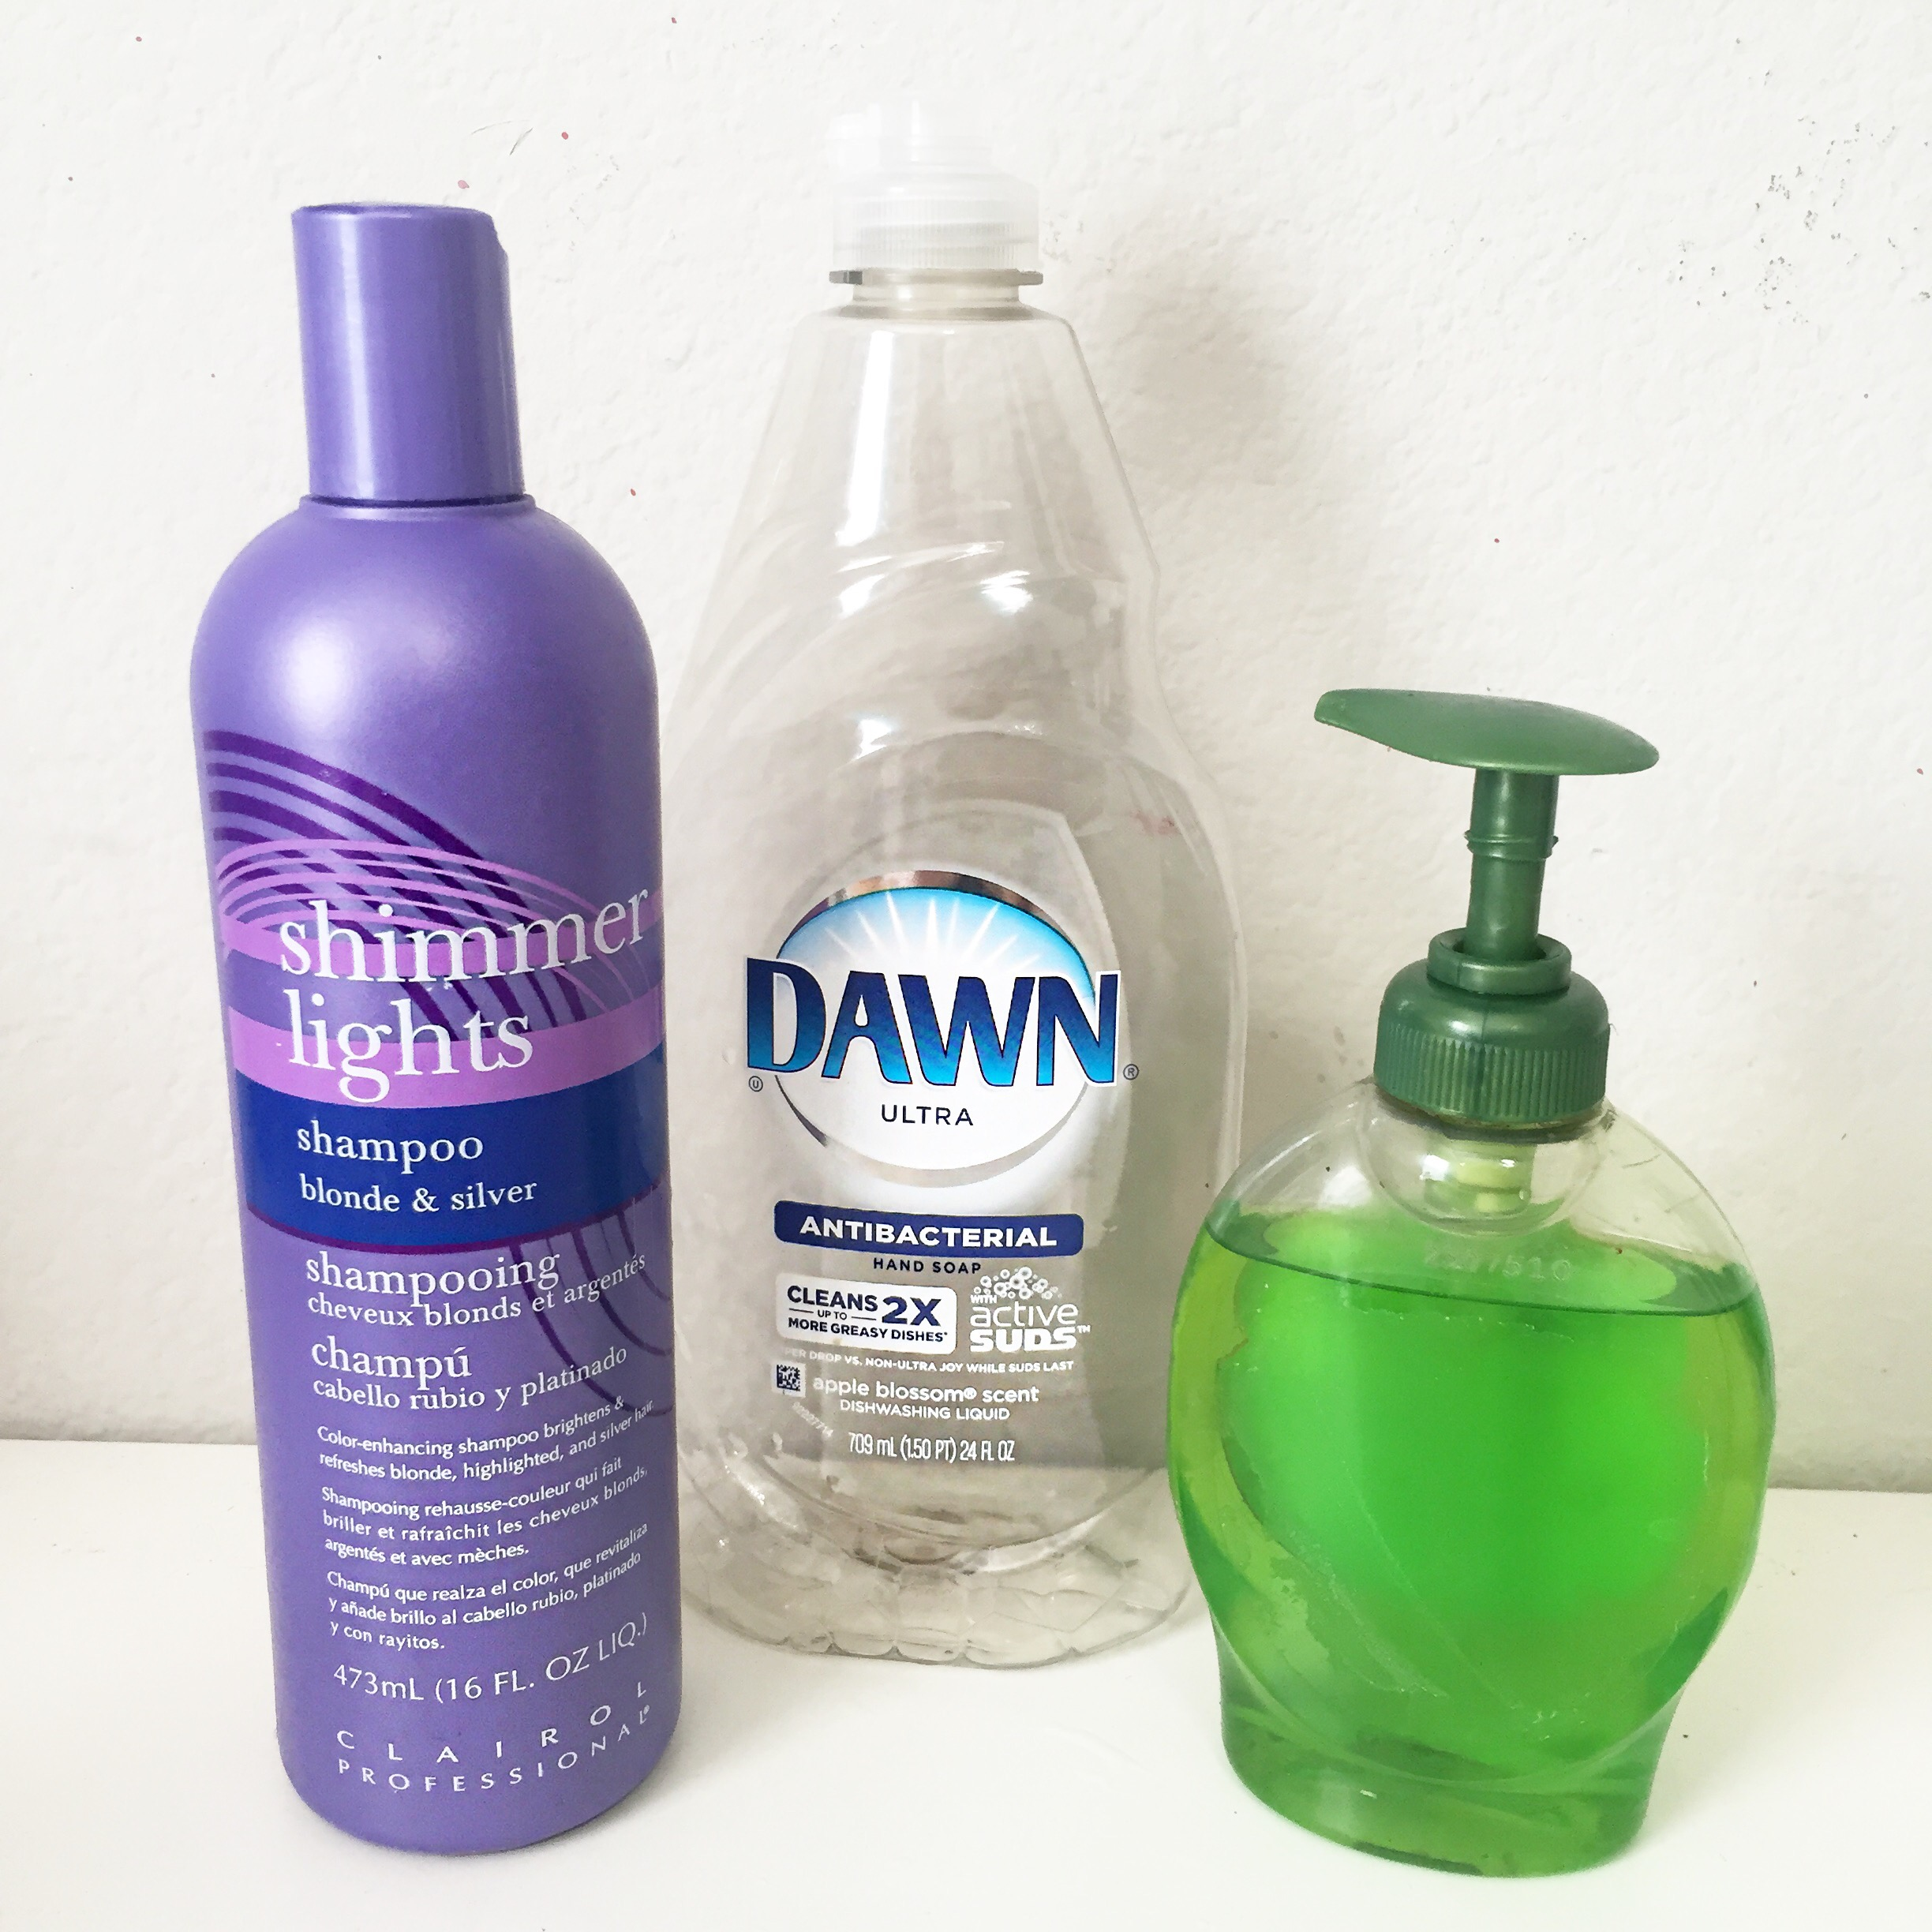 I Use Shimmer Lights As My Purple Shampoo To Tone By Blonde Hair. Also, The  Green Liquid Is Just The Dawn Soap, Its Easier To Use That Way.